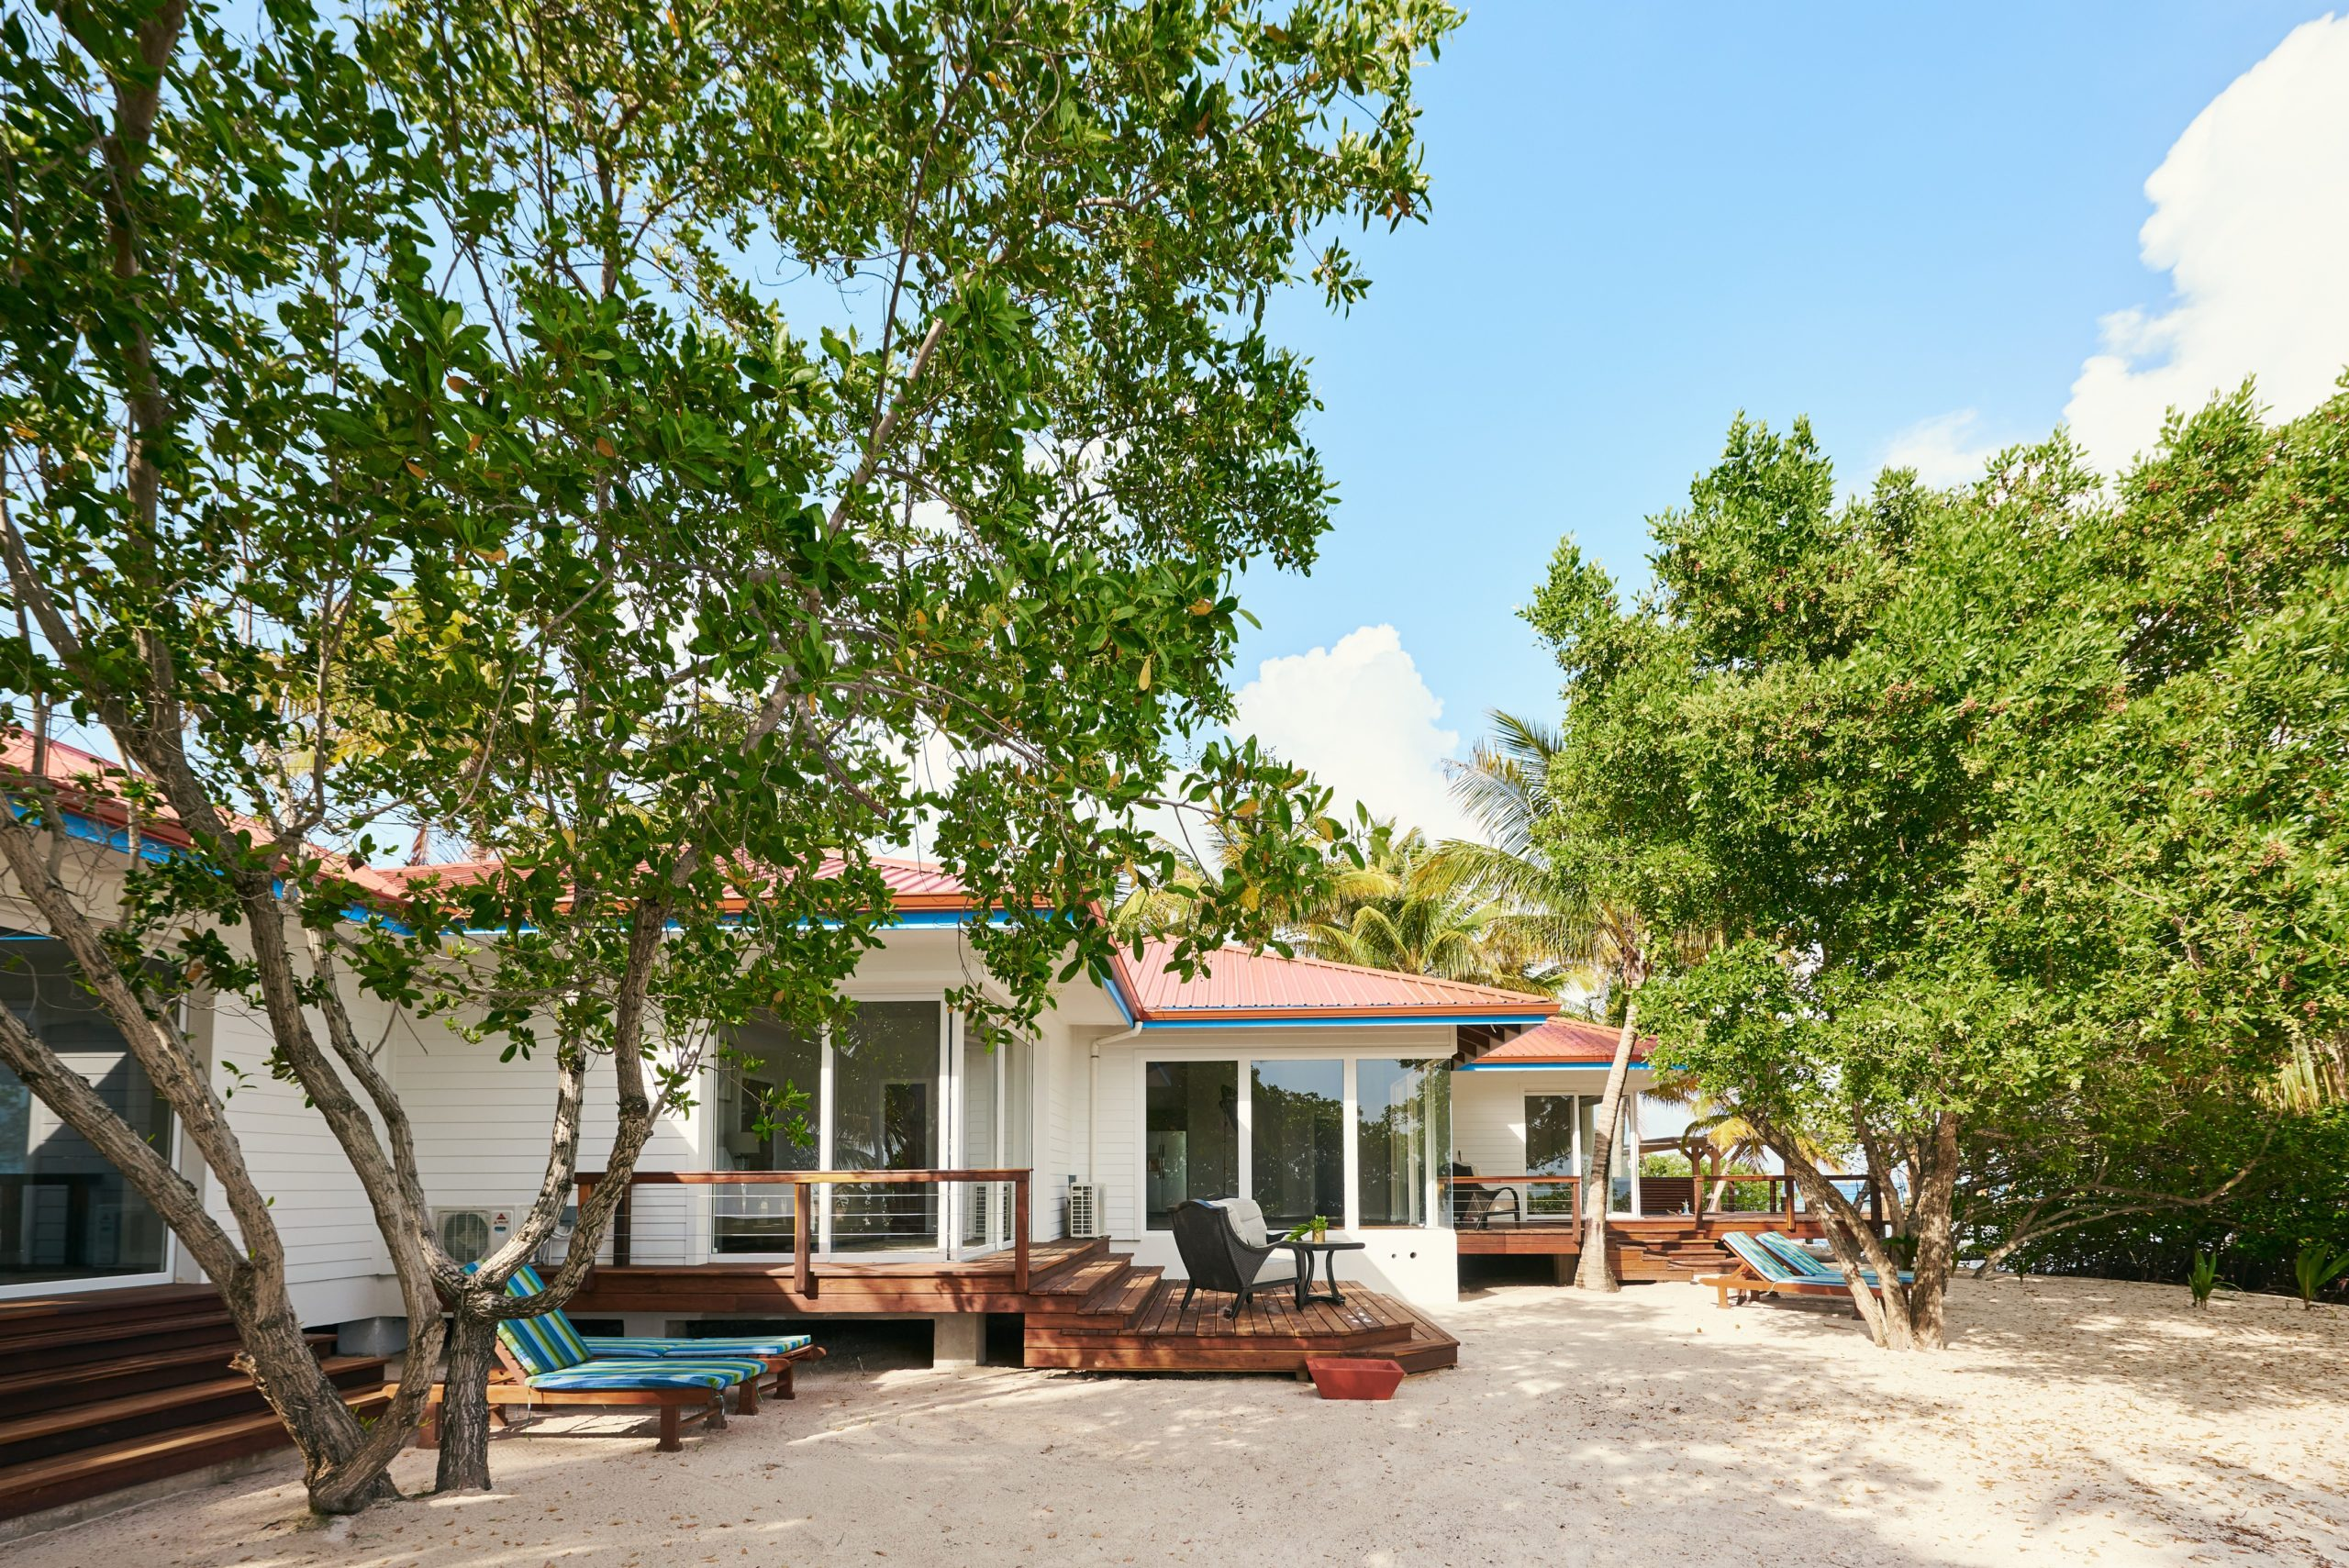 Ray Caye Accommodations